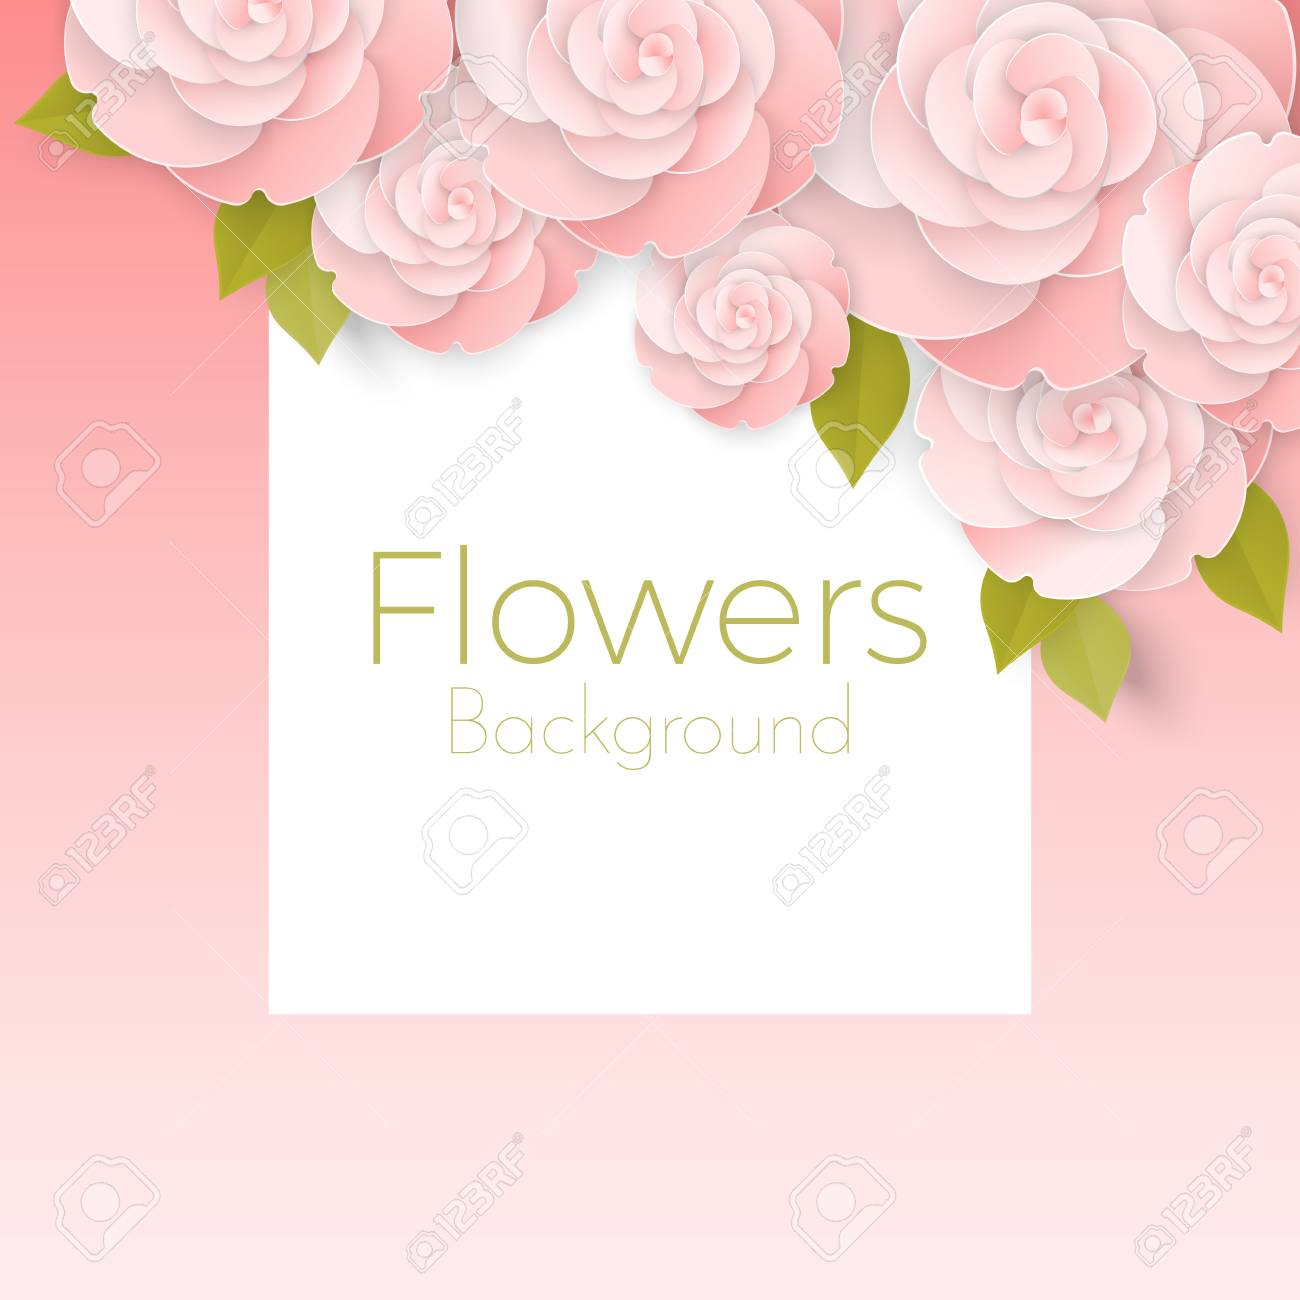 Paper Flower Realistic Style Illustration Of Pink Roses Royalty Free